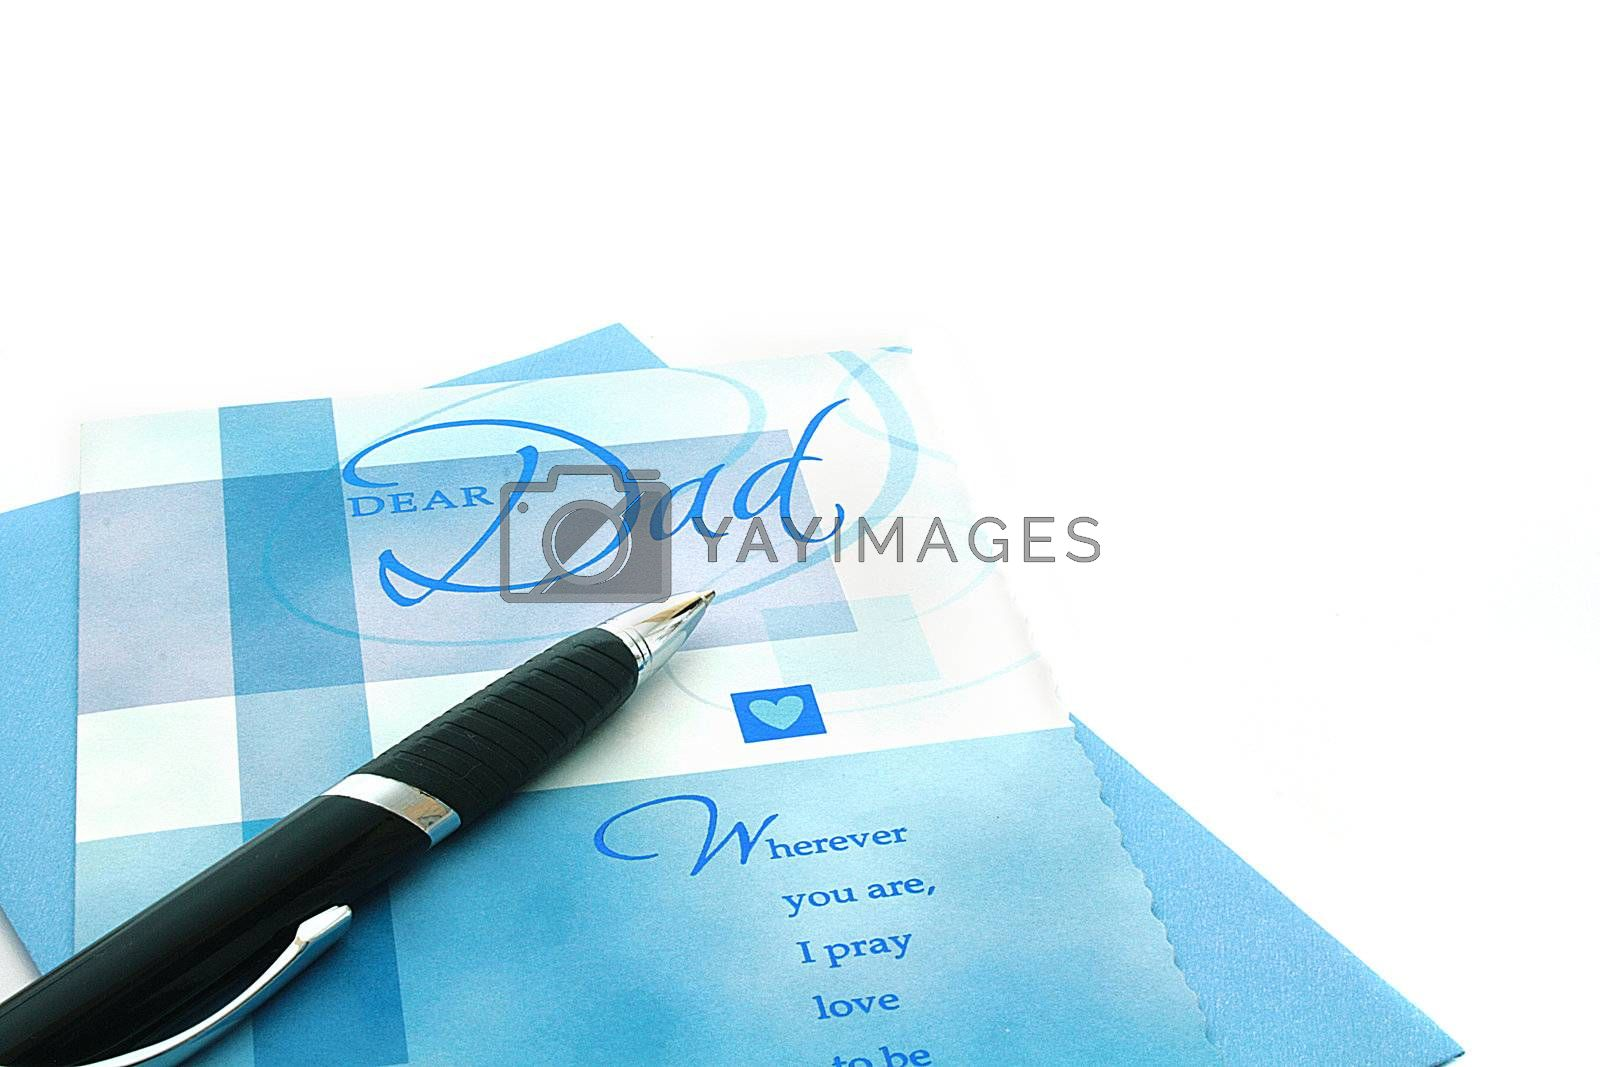 The black pen against congratulatory cards to Father day.